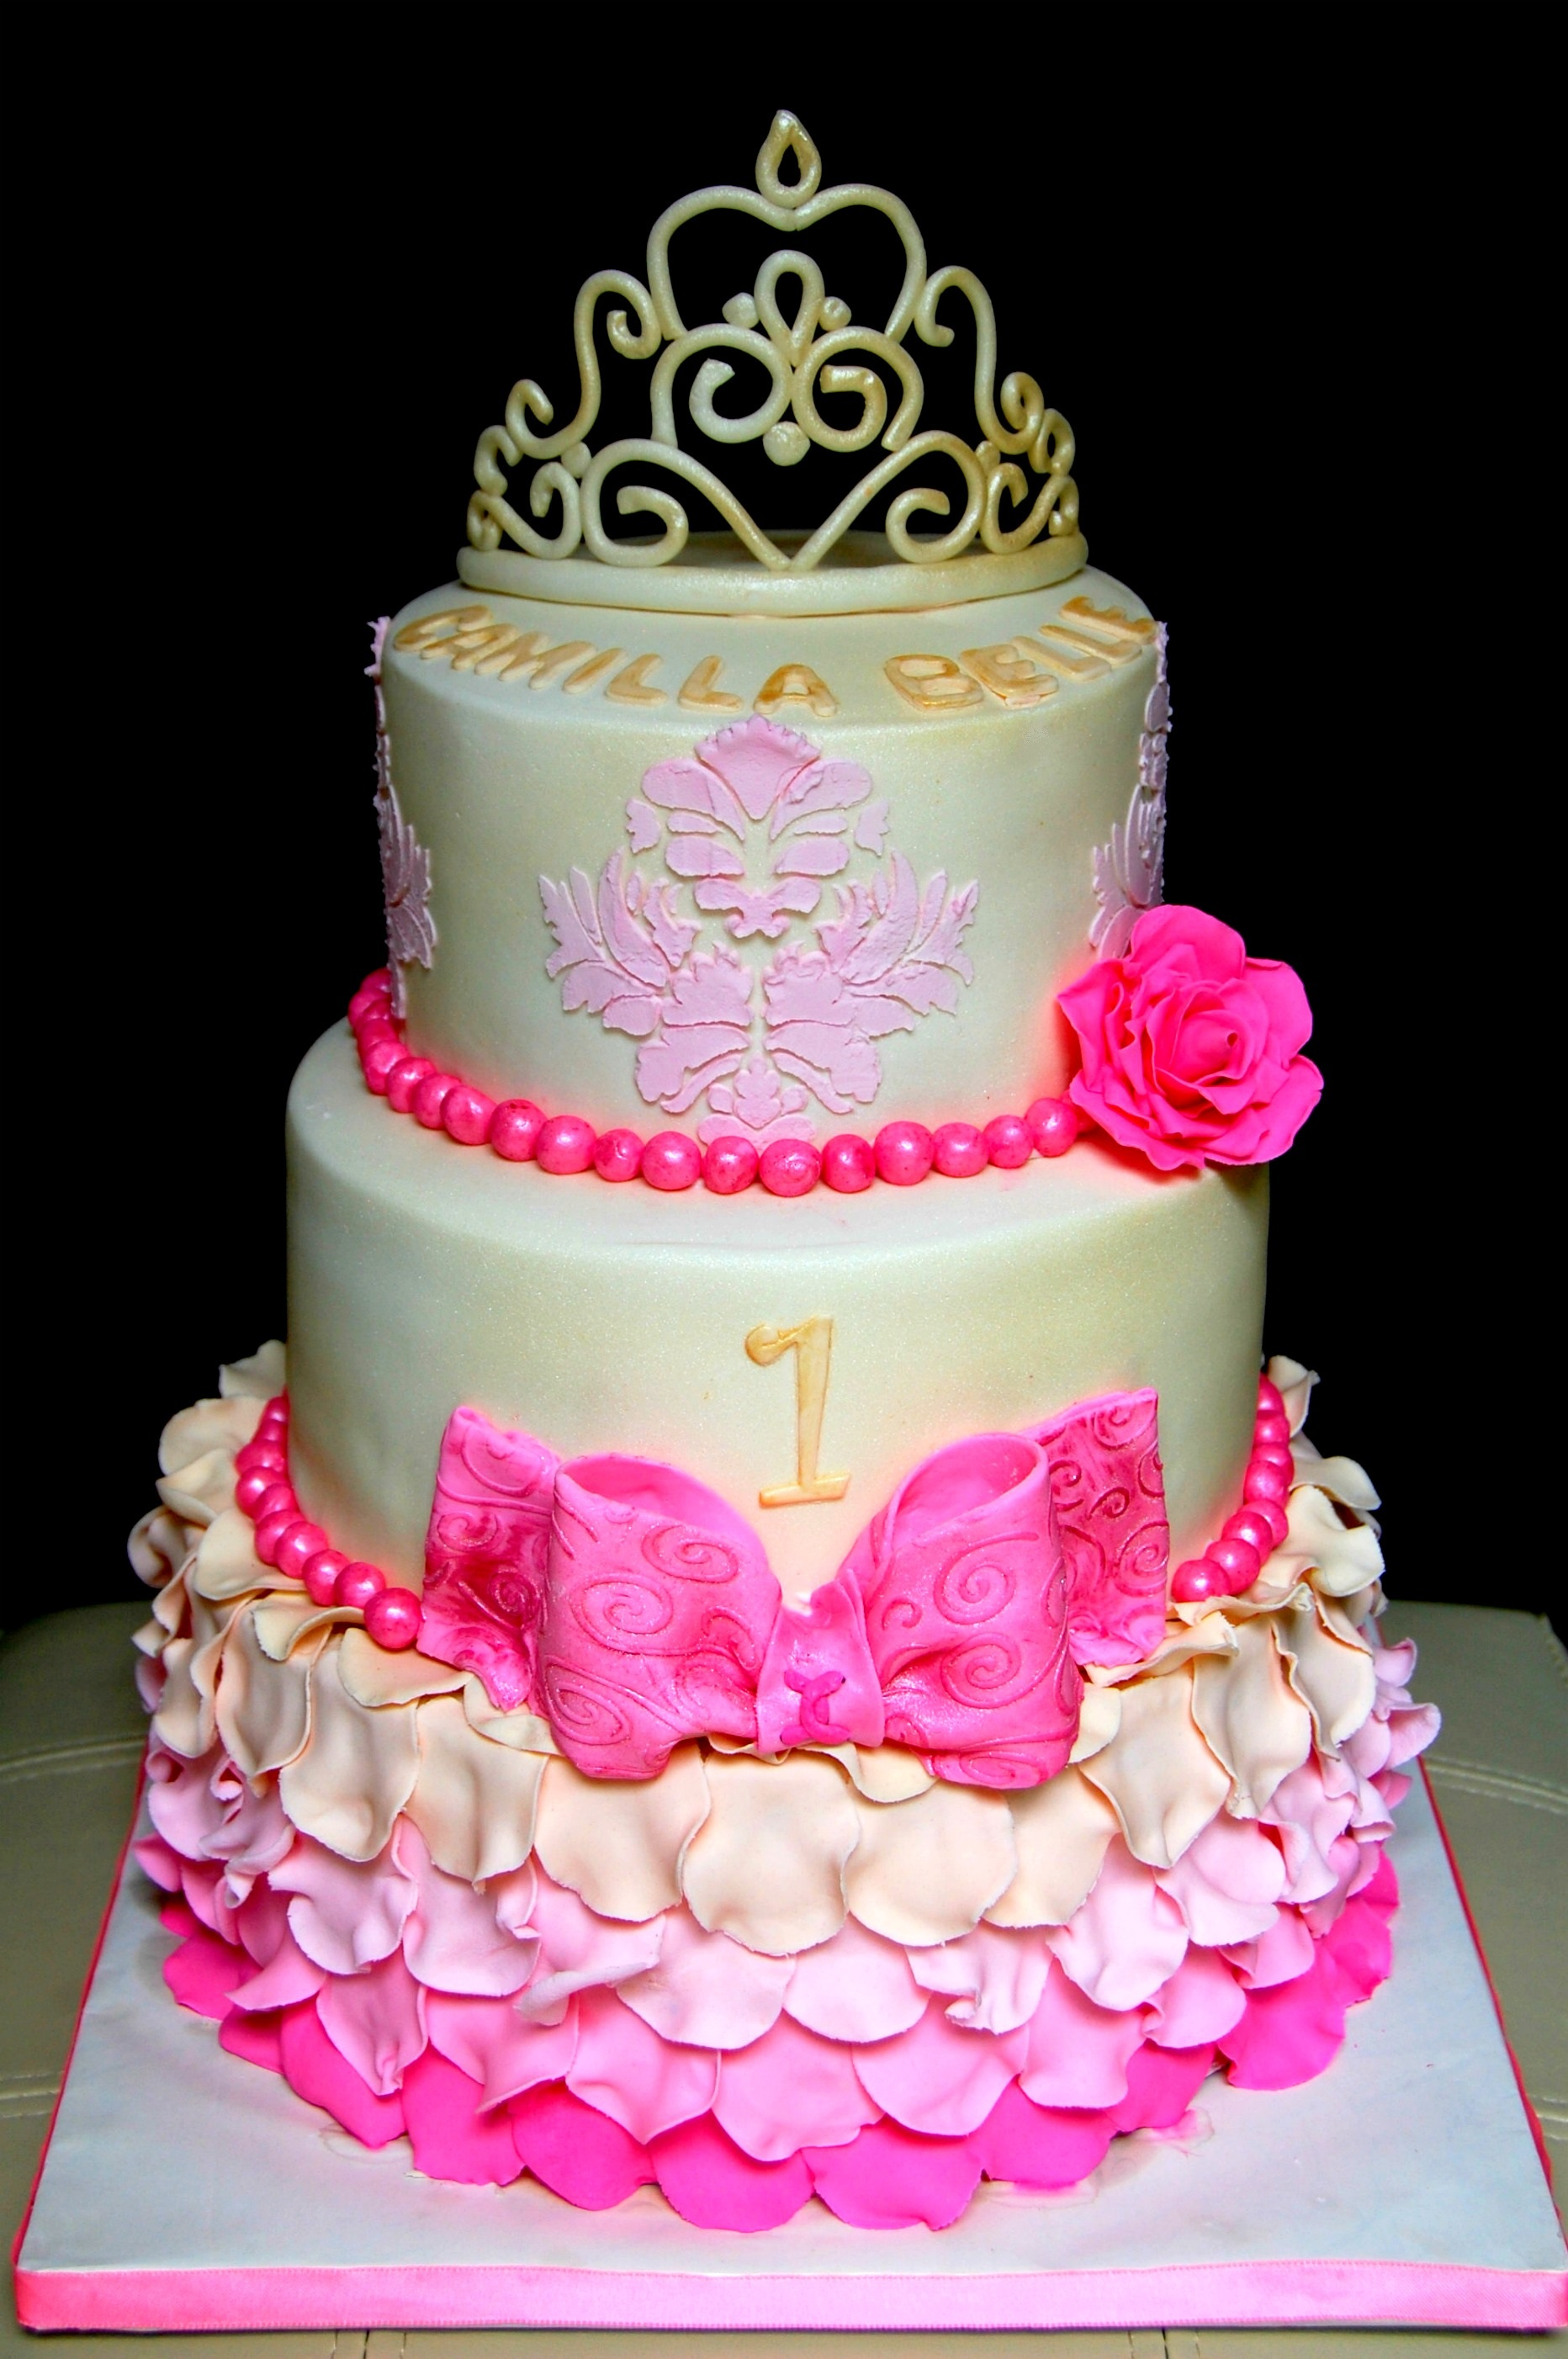 Cake Theme For Birthday : Vintage Princess themed birthday Cake - Maria s Dream Cakes